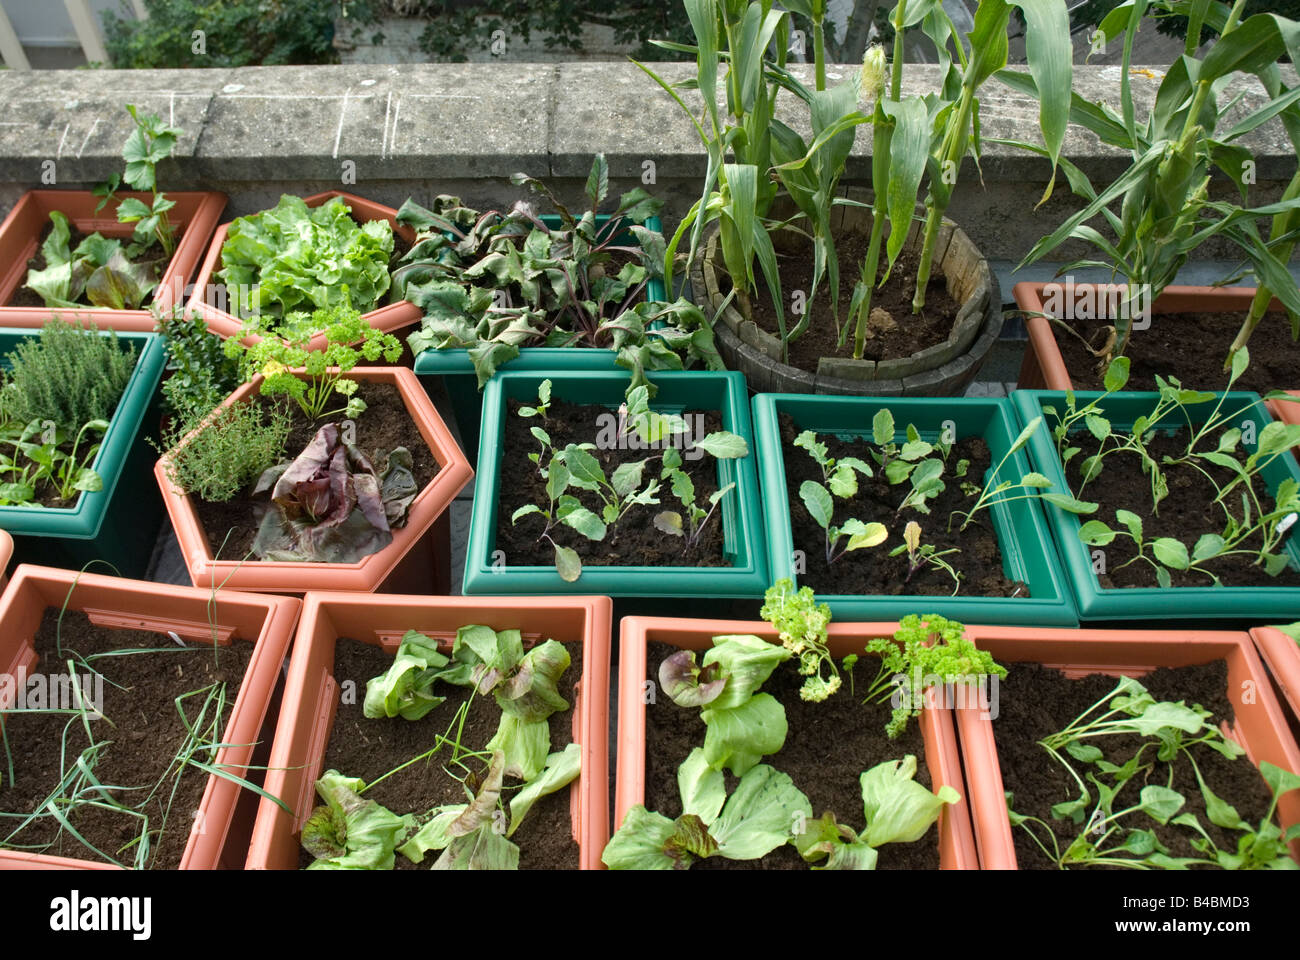 Vegetables and salads growing in plastic pots on rooftop urban vegetable  garden London. Vegetables and salads growing in plastic pots on rooftop urban